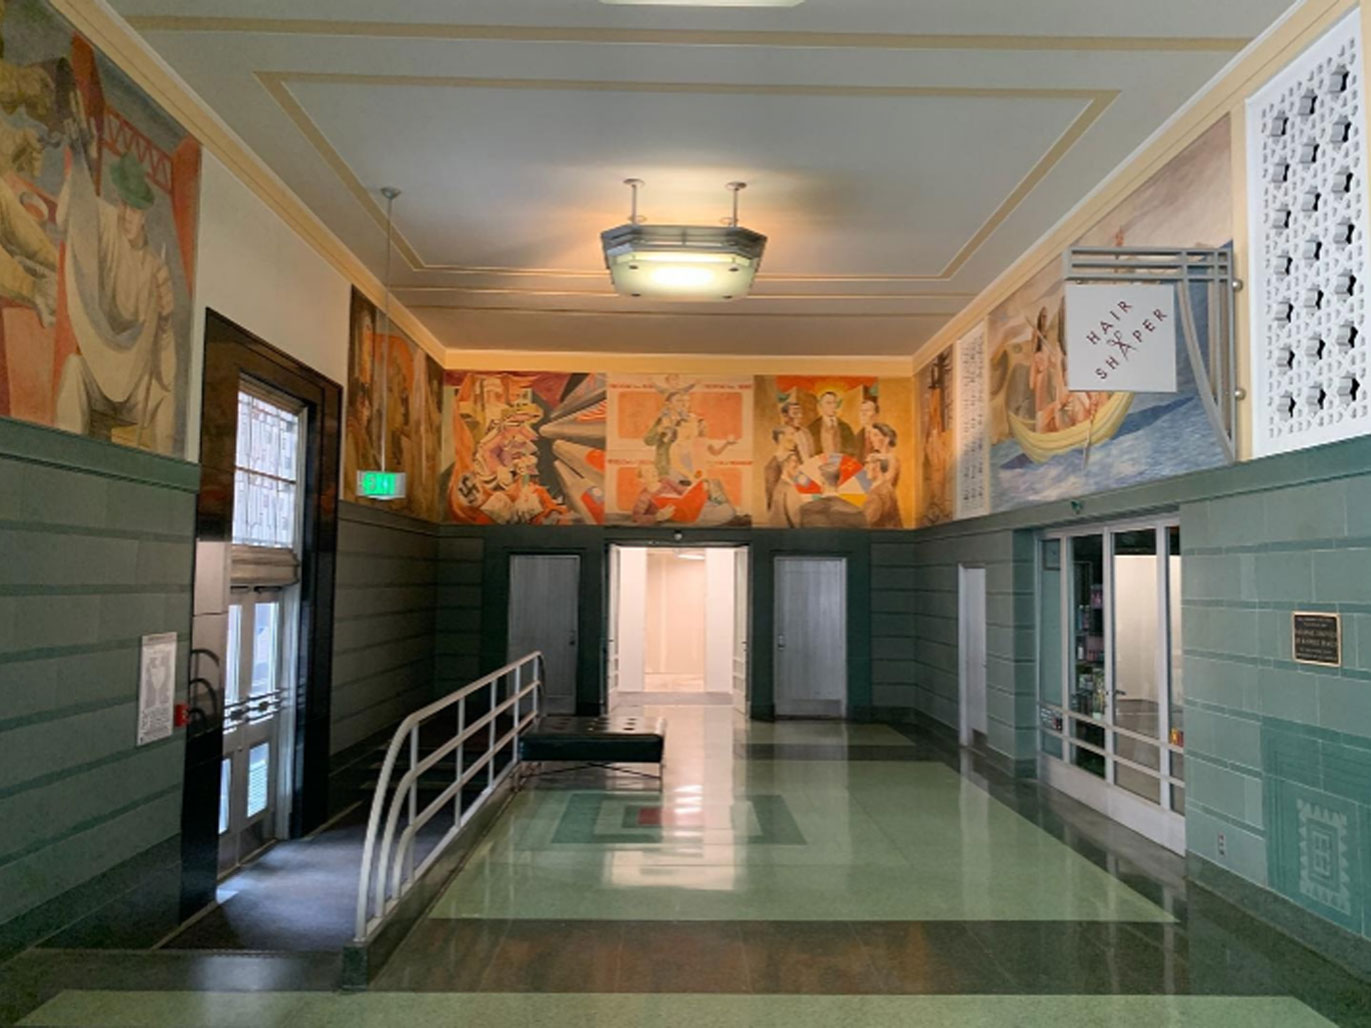 The Art Of Controversy: The San Francisco Rincon Post Office Murals That Congress Tried To Shutdown